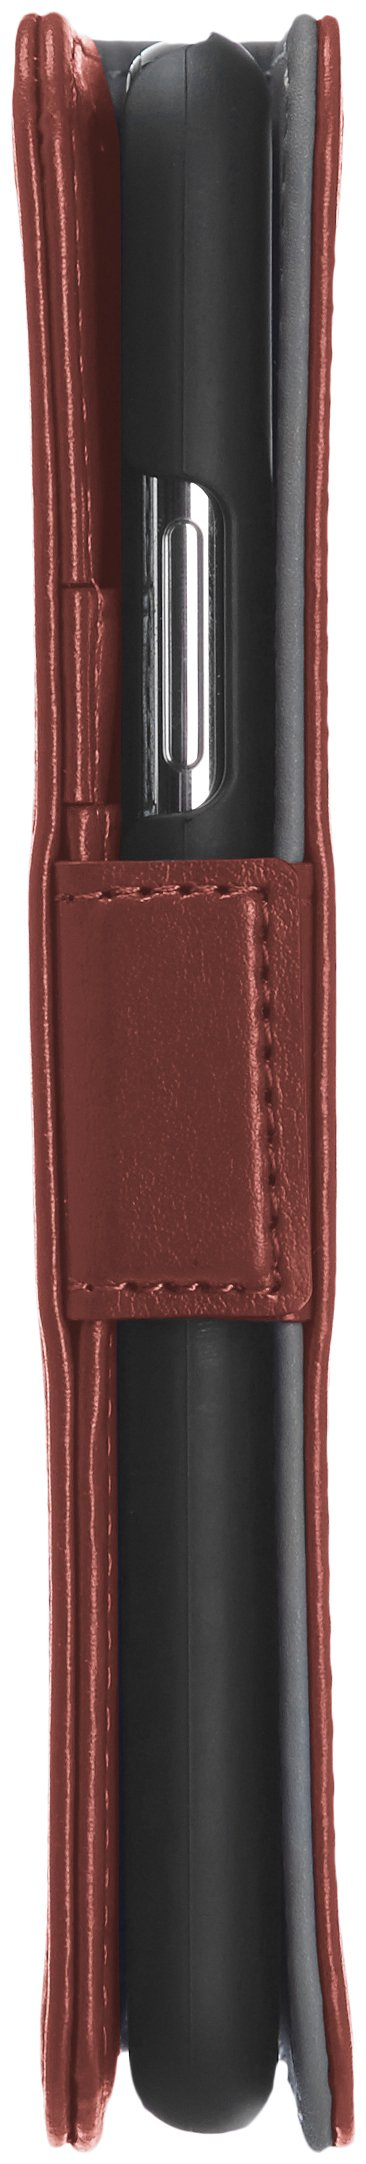 AmazonBasics iPhone X PU Leather Wallet Detachable Case, Dark Brown by AmazonBasics (Image #8)